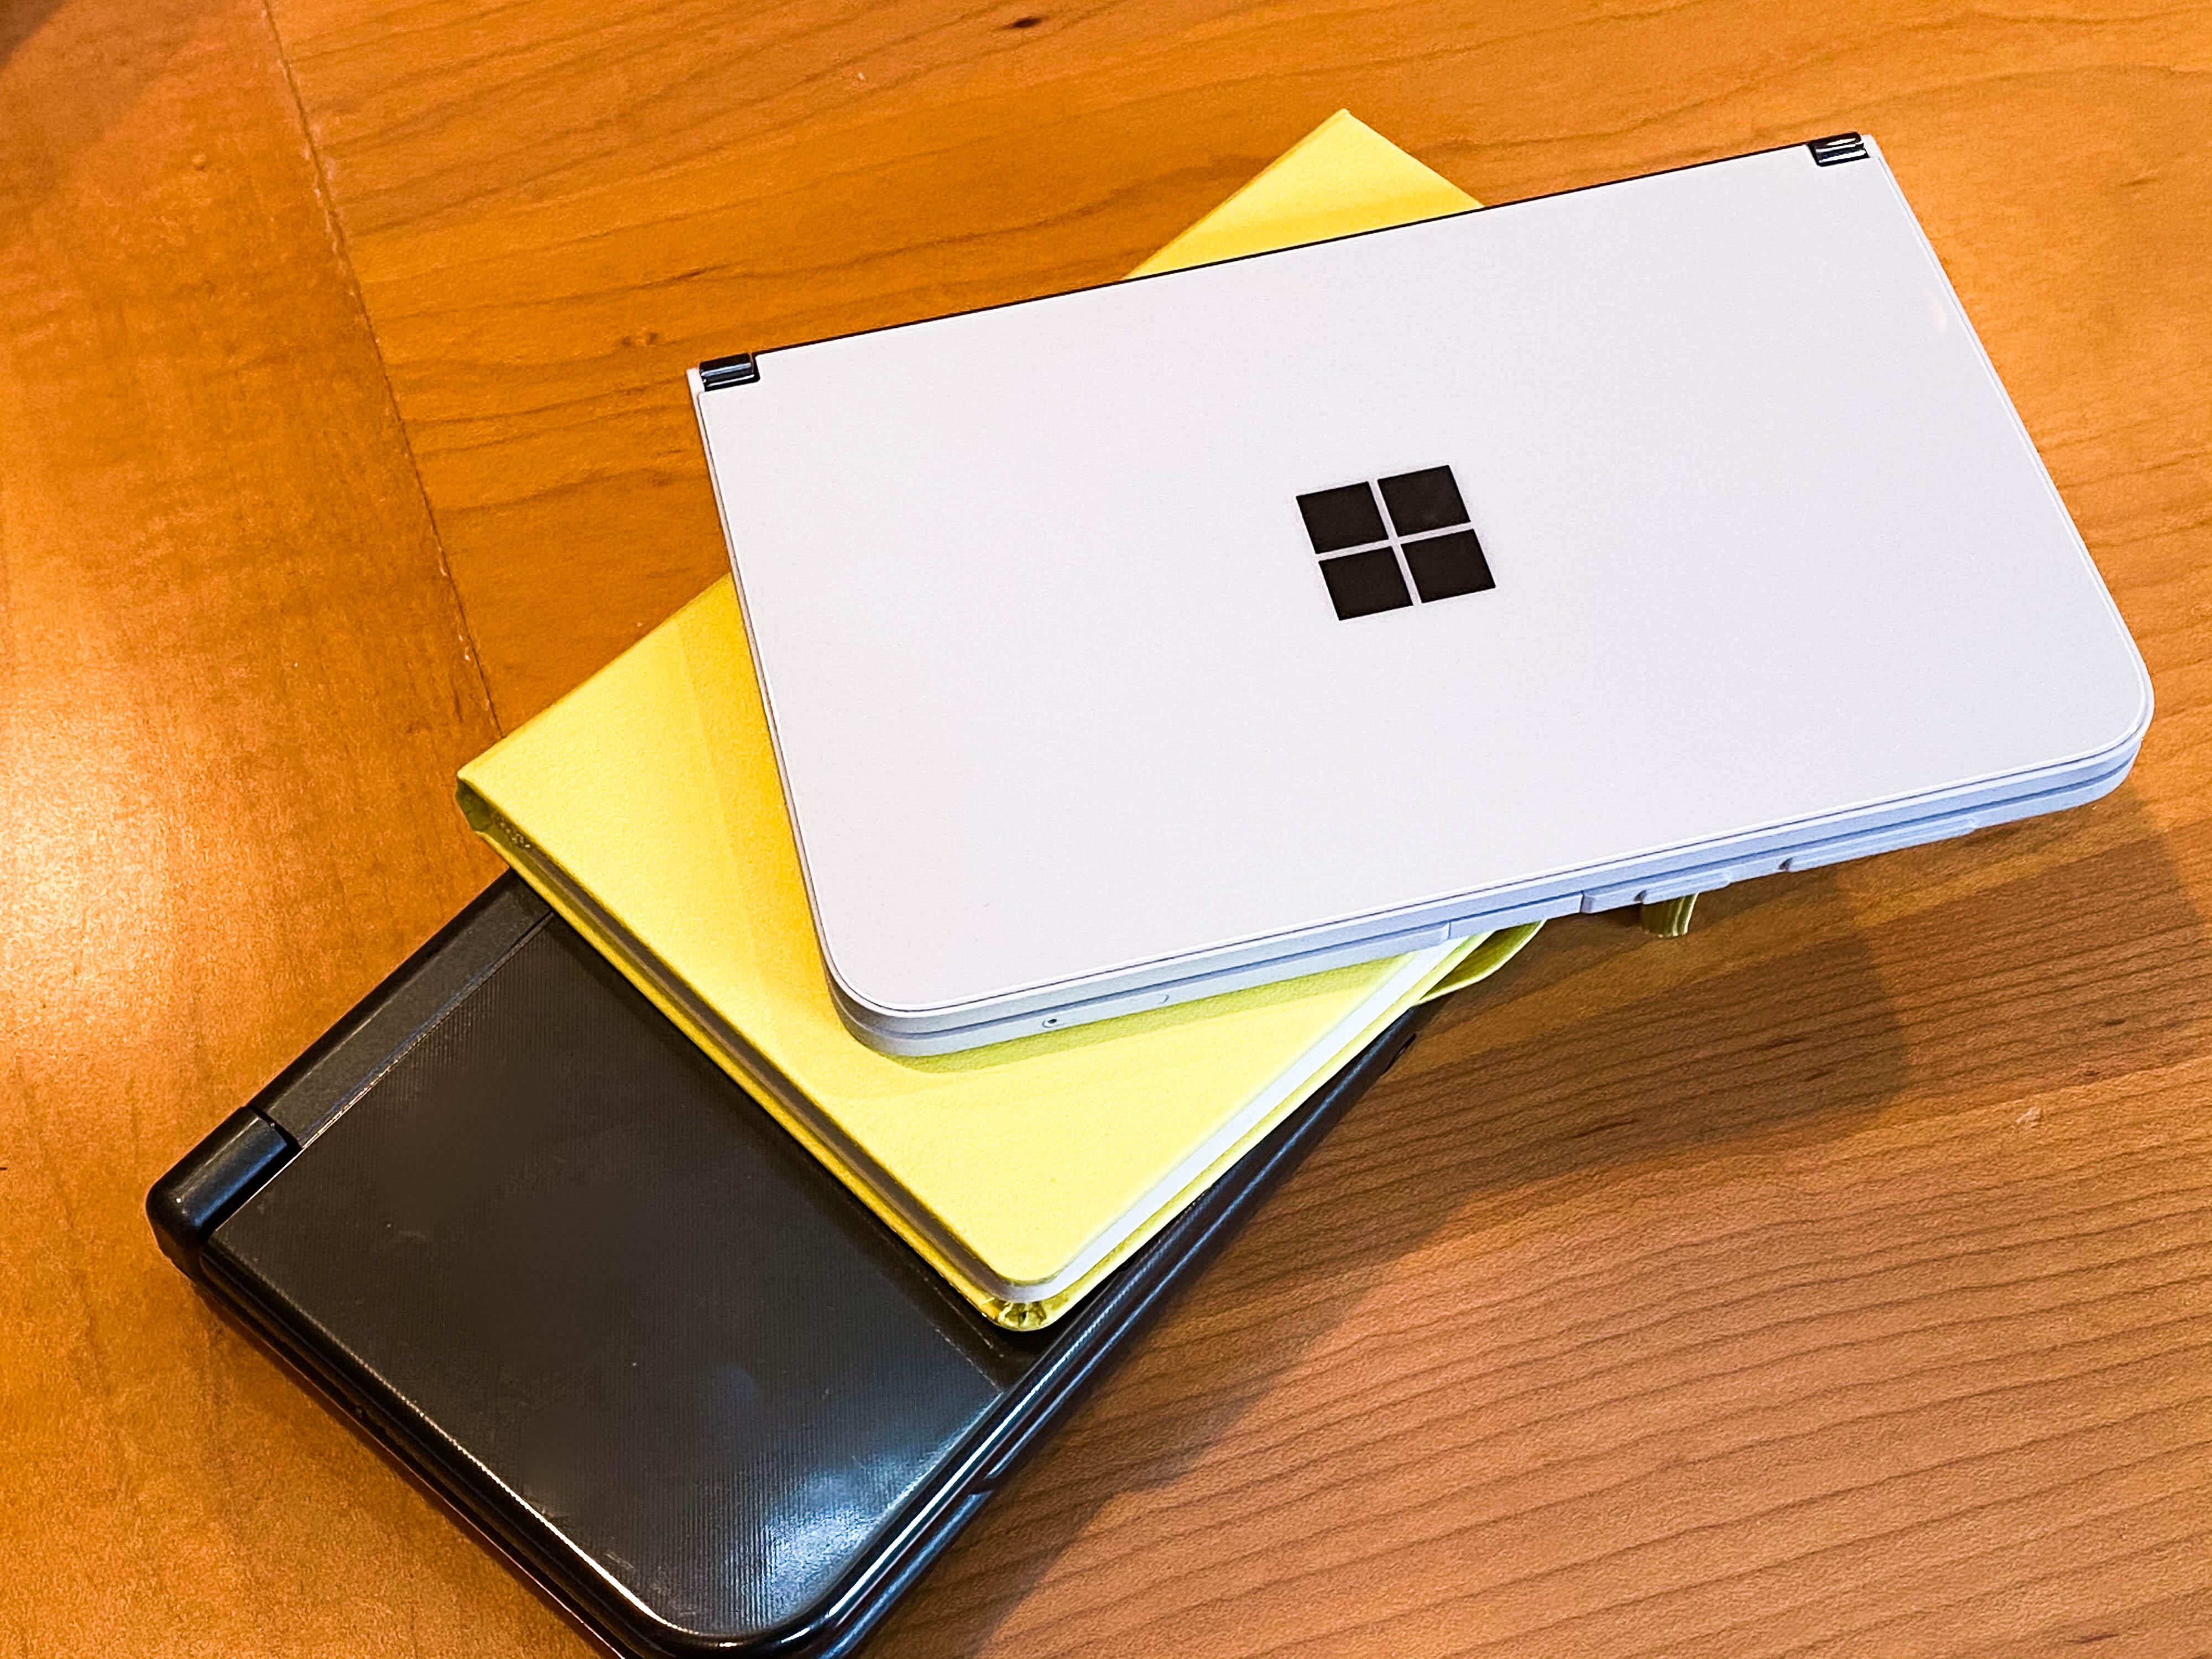 <p>Microsoft's developer conference is typically when we get to learn about new software and features.</p>